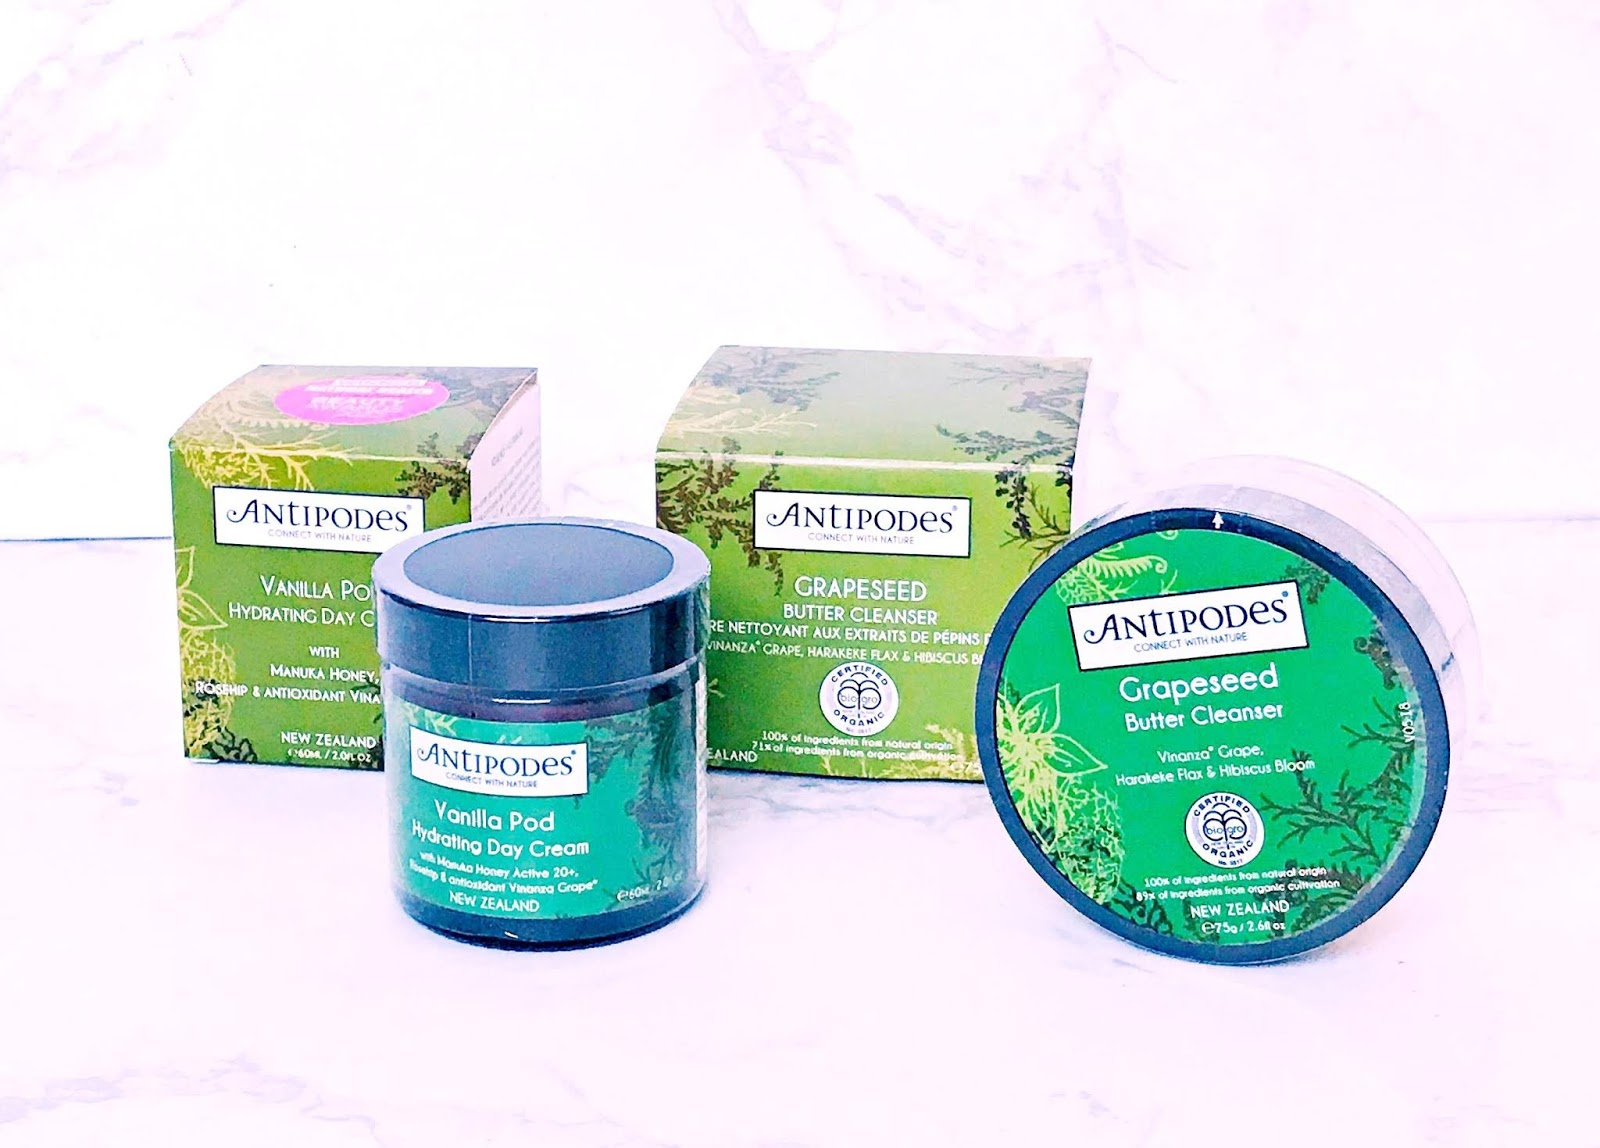 Antipodes skincare giveaway